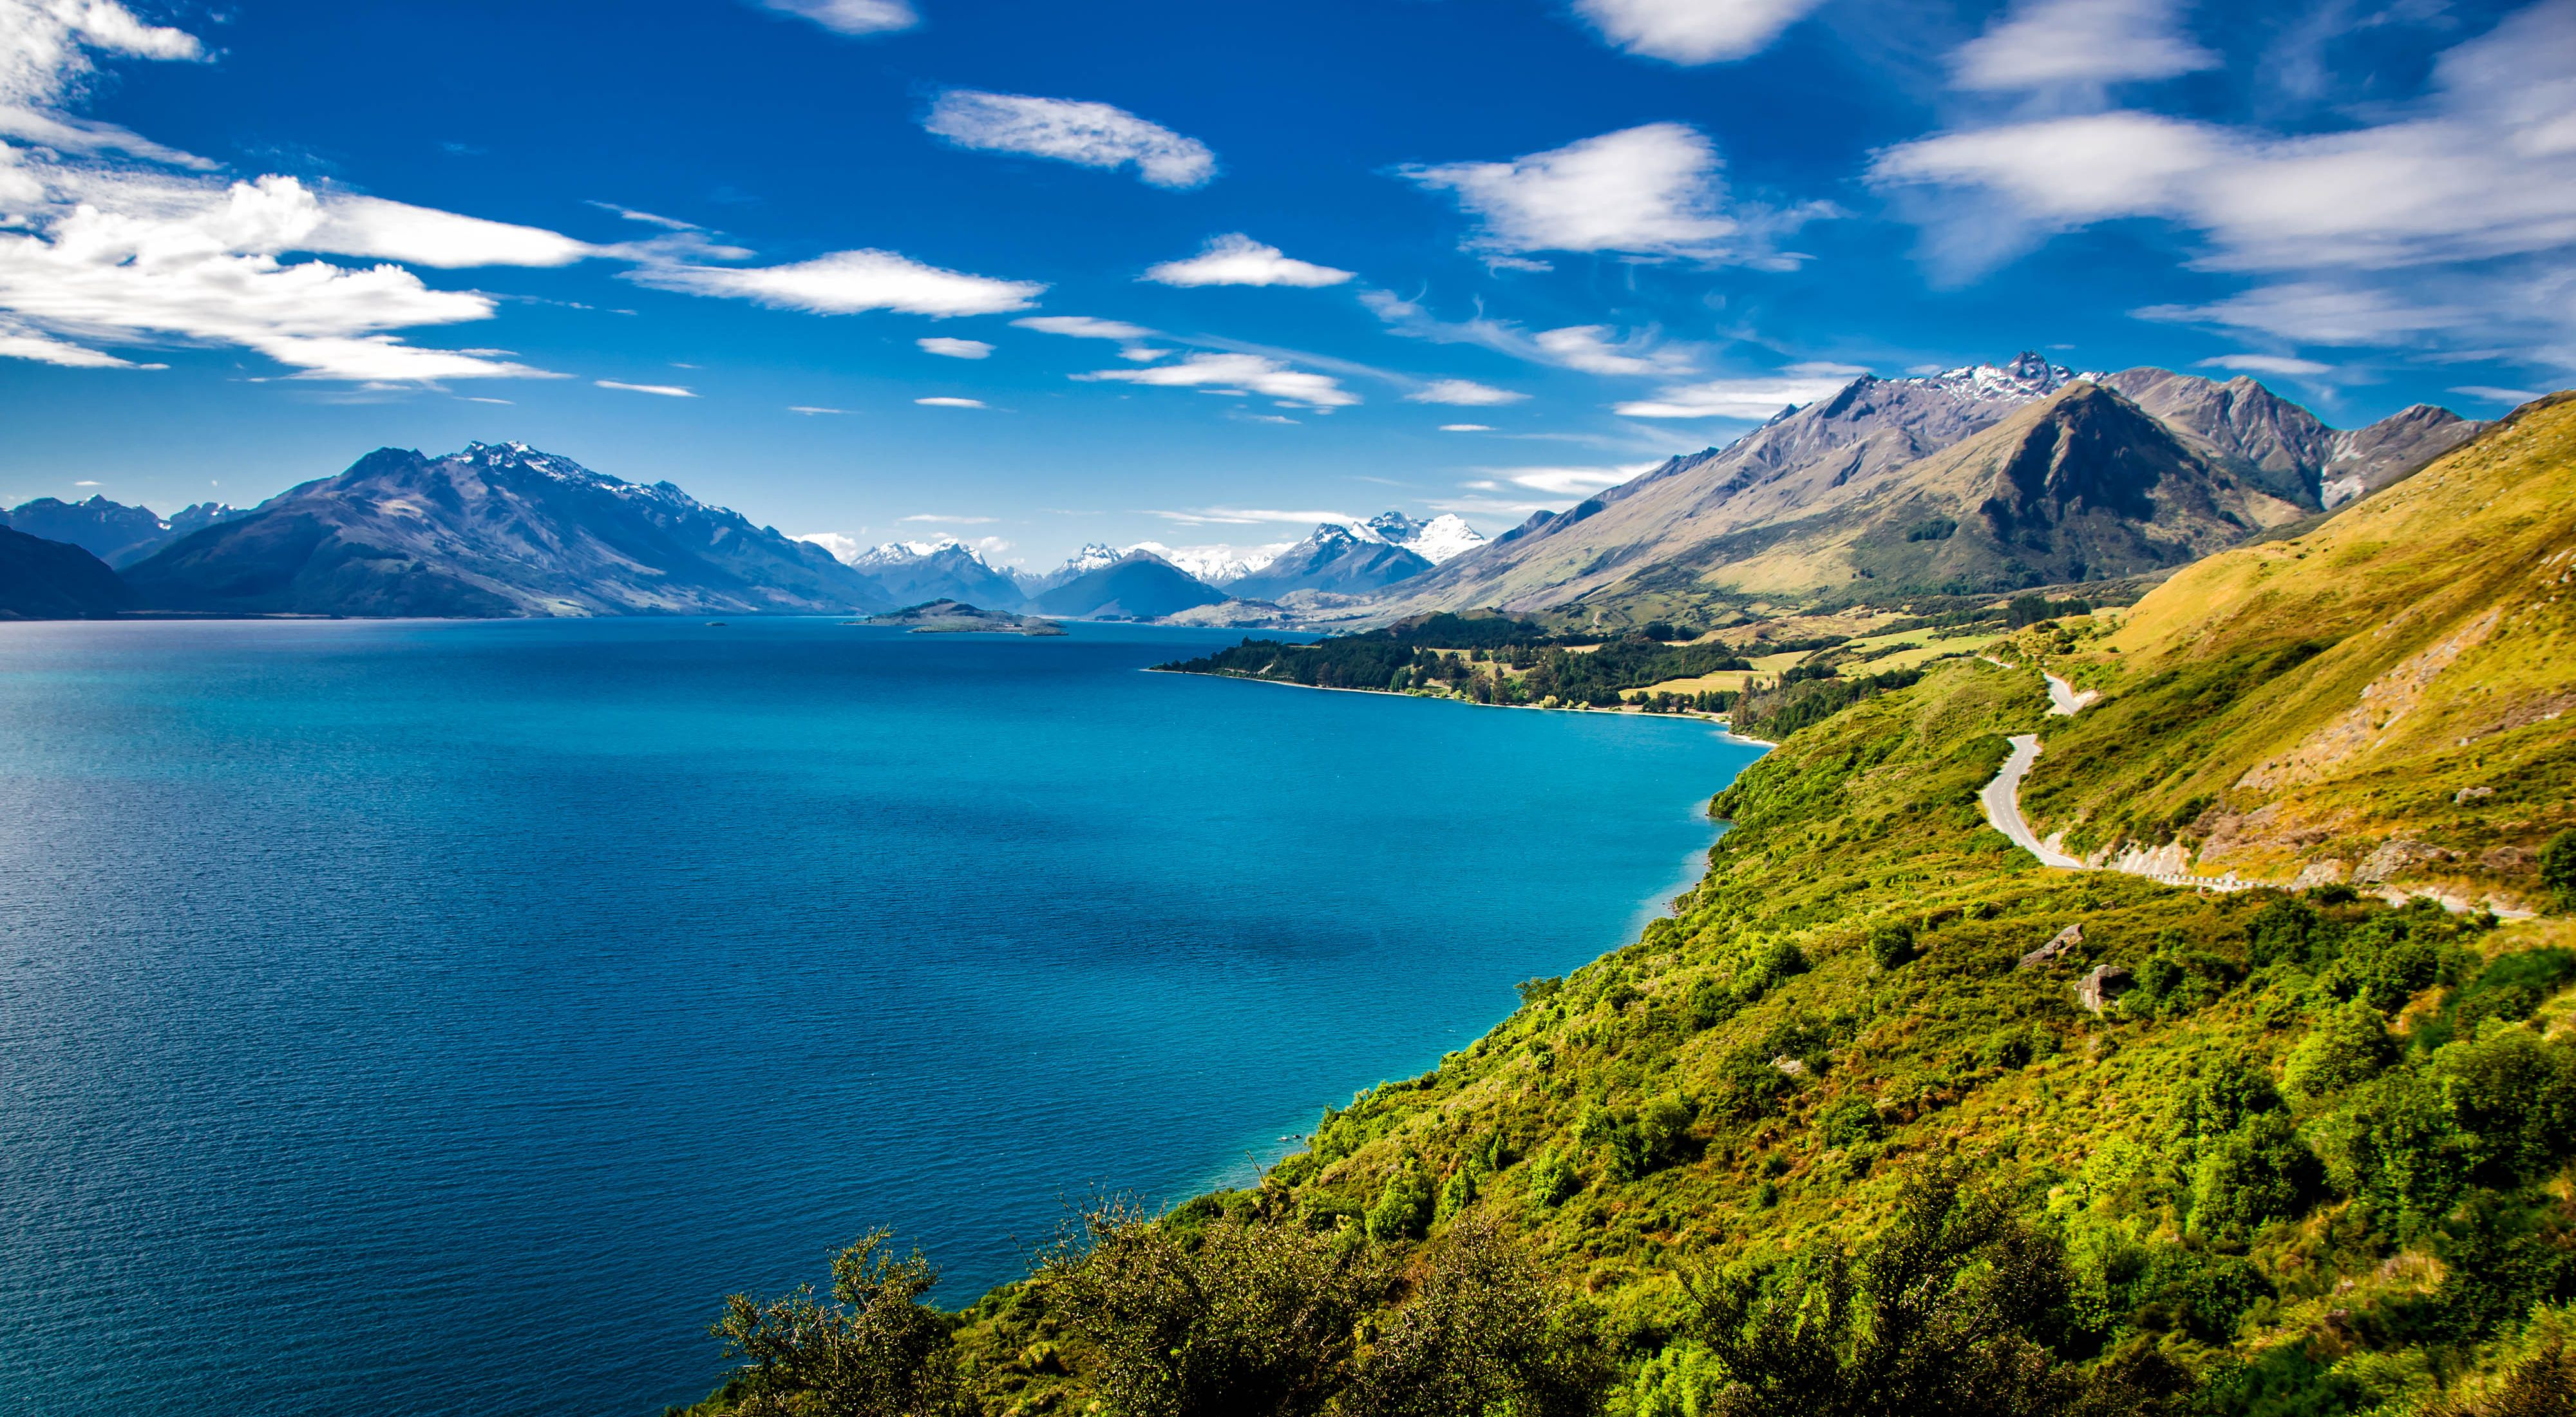 Summer view of Lake Wakatipu and the road from Queenstown to Glenorchy.  Southern Alps mountains in the distance.